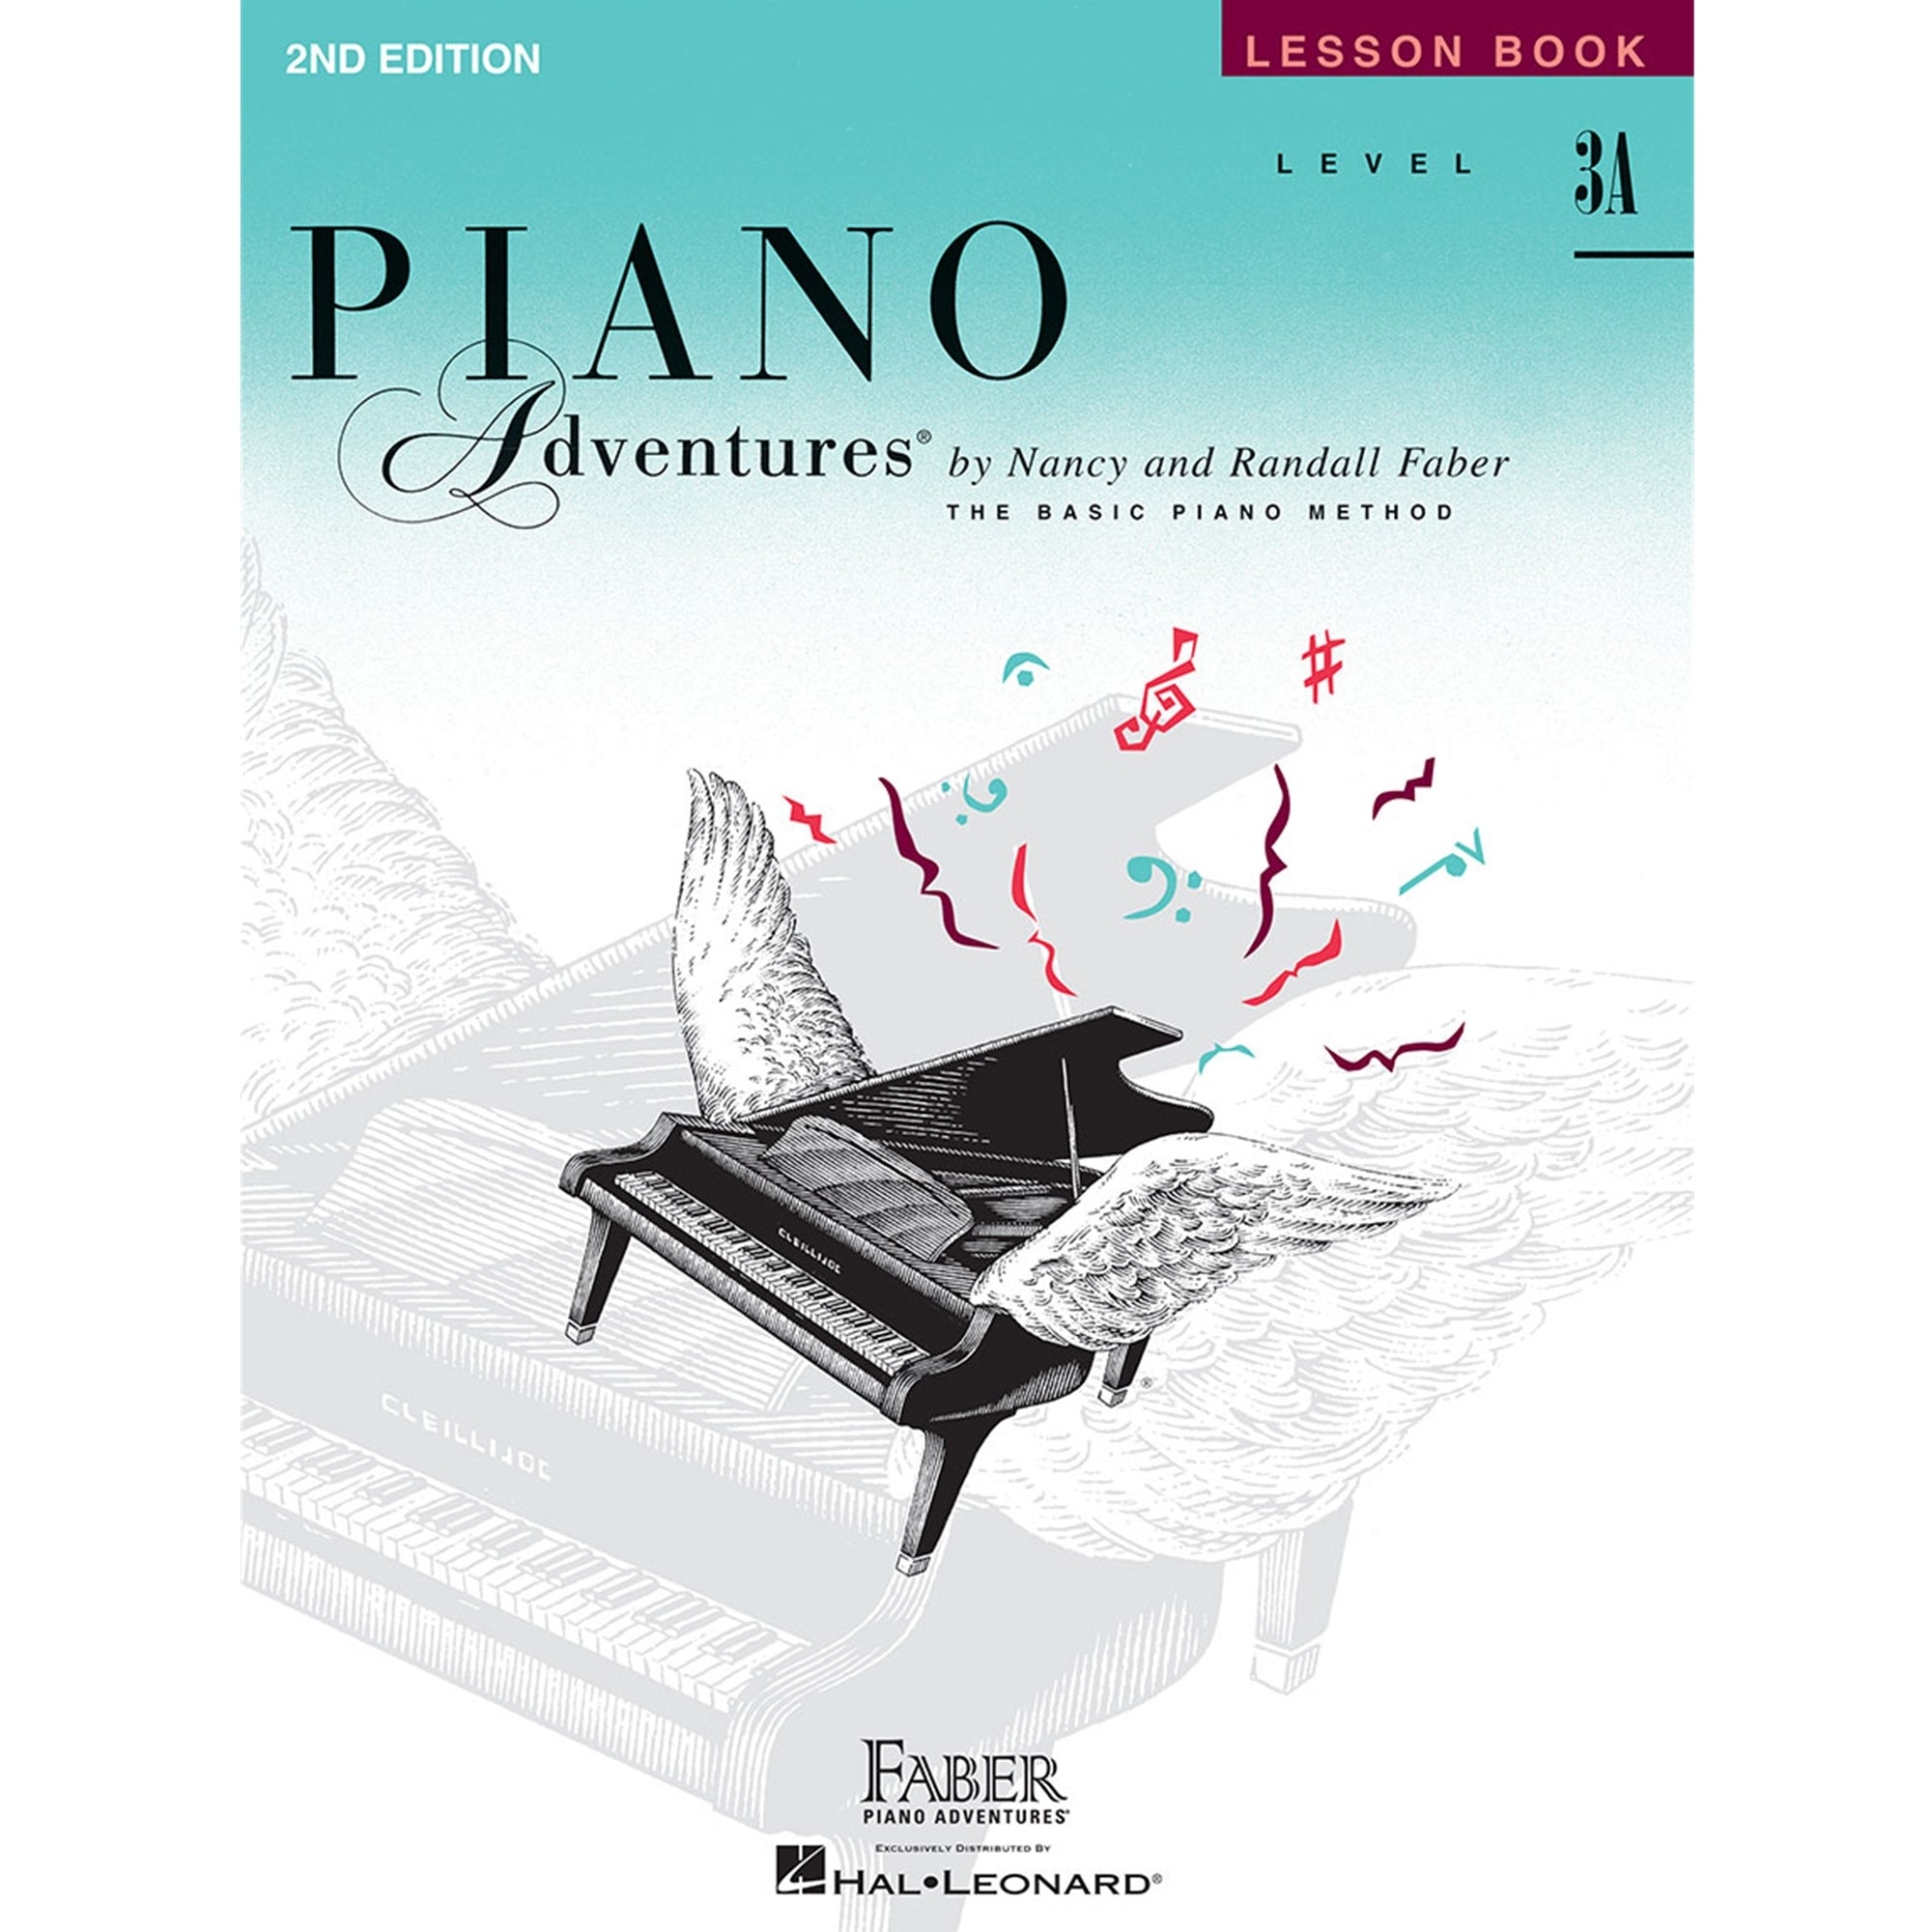 FJH PUBLISHER 420180 Piano Adventures Lesson Level 3A